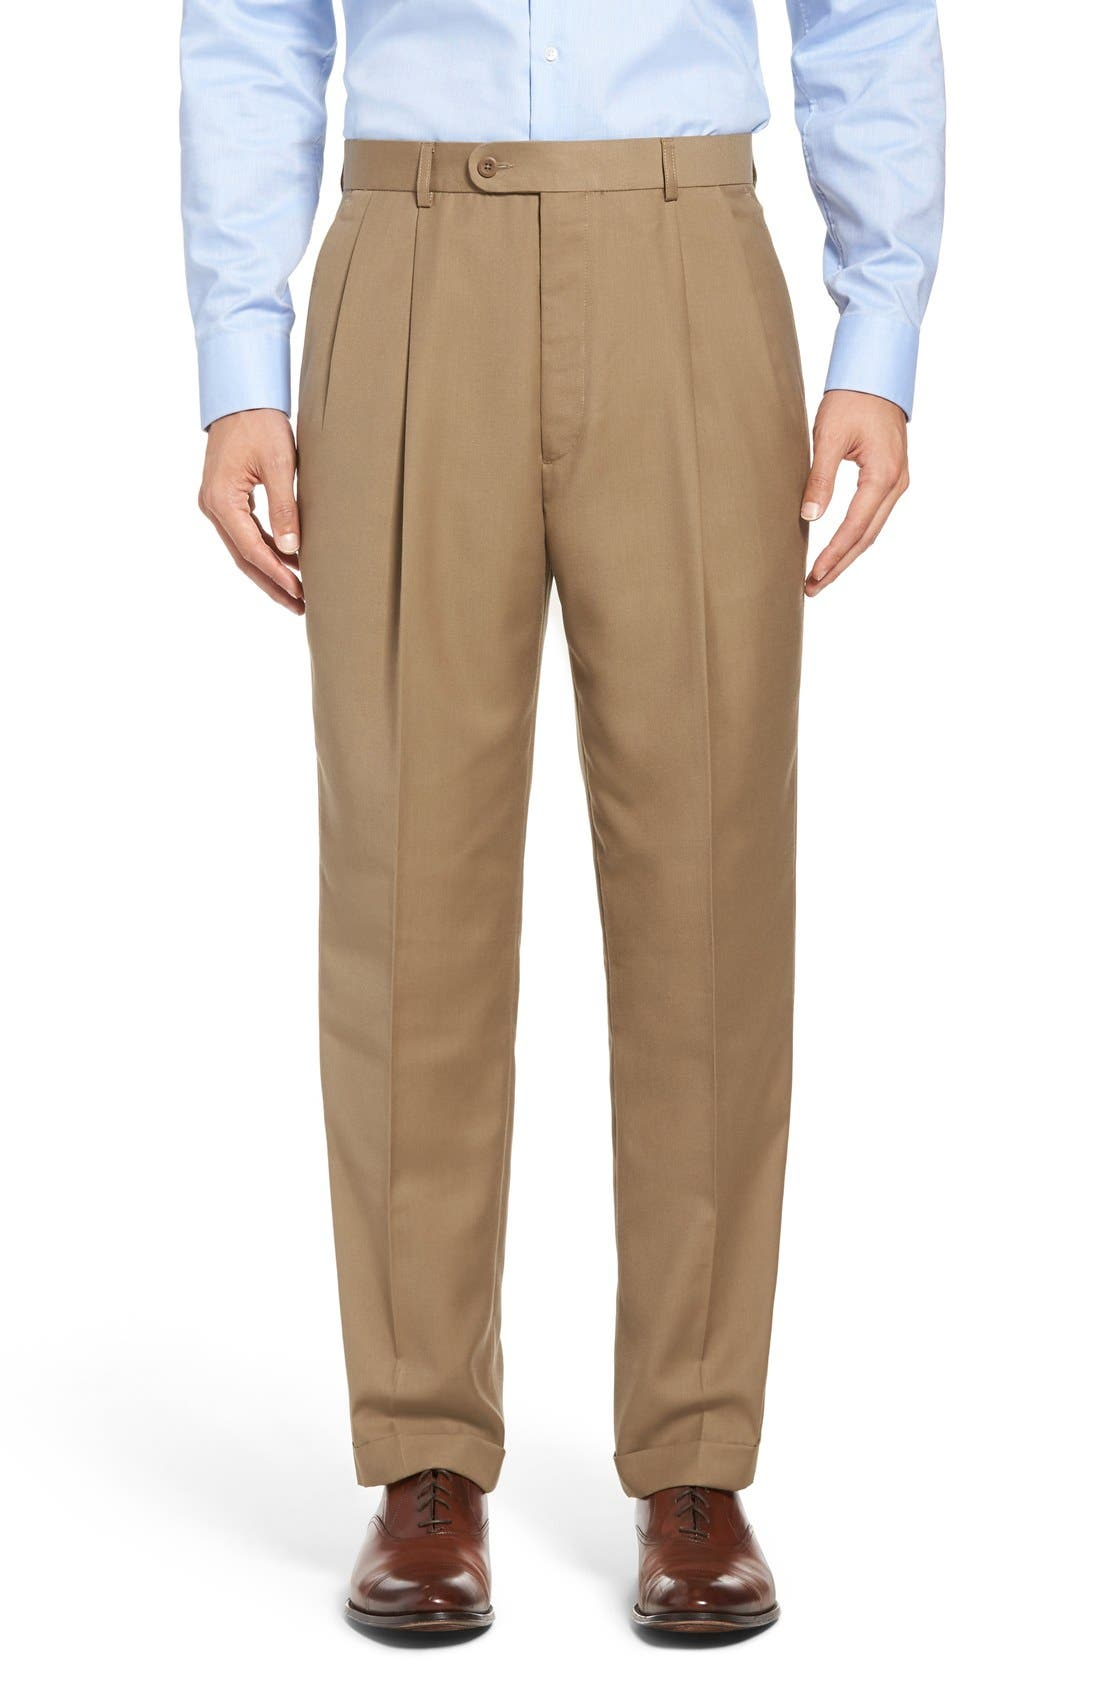 Linea Naturale Pleated Microfiber Dress Pants